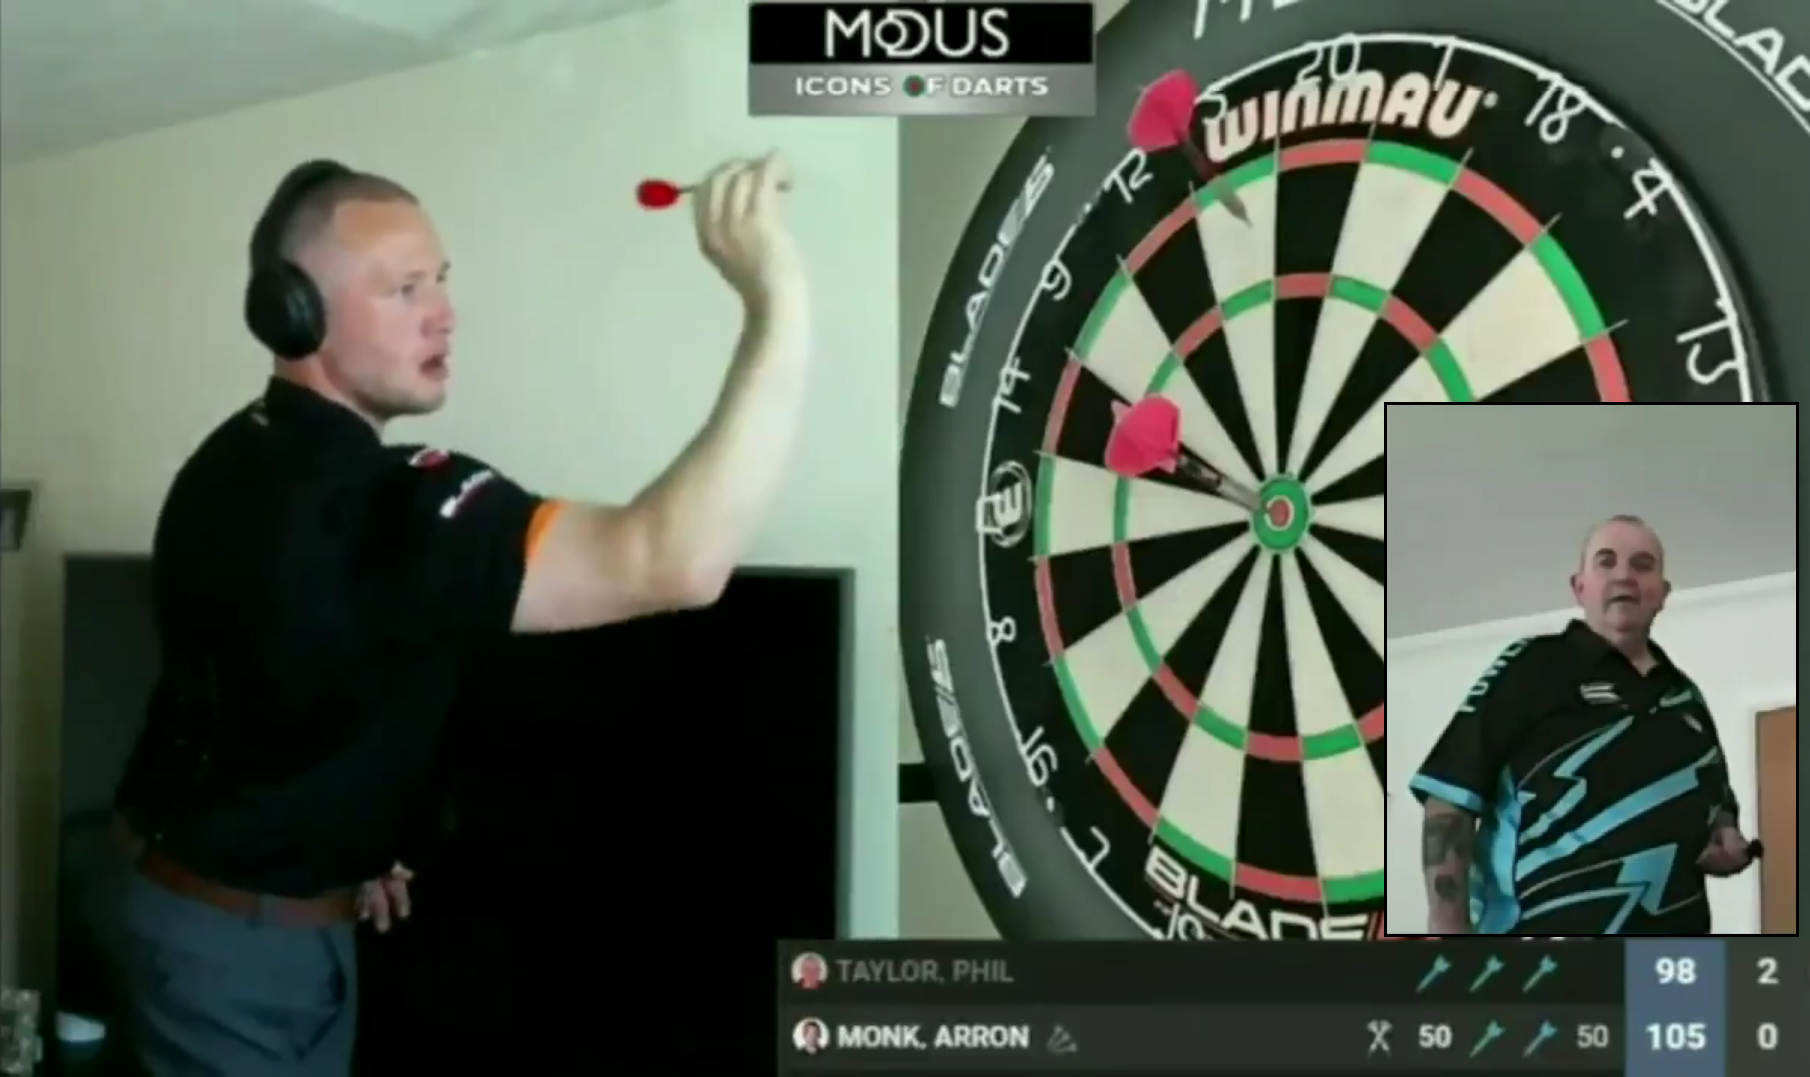 Arron Monk's Bull Bull Exhibition Shot In His Game Against Phil Taylor